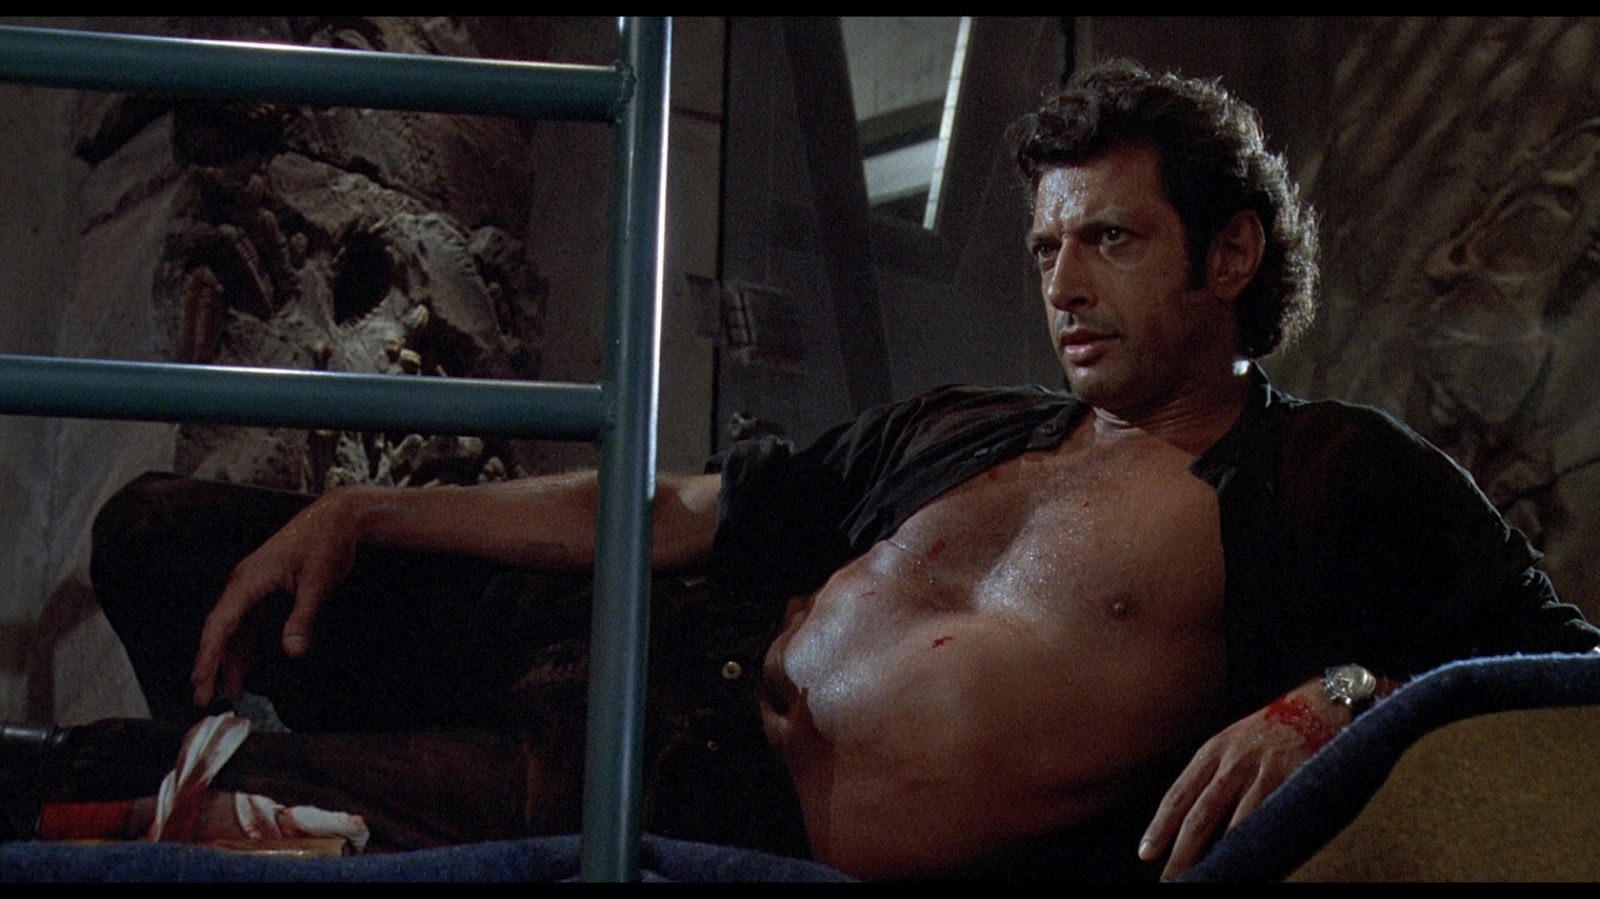 Jeff Goldblum as Dr. Ian Malcolm in Jurassic Park, shirtless and in a come-hither pose.